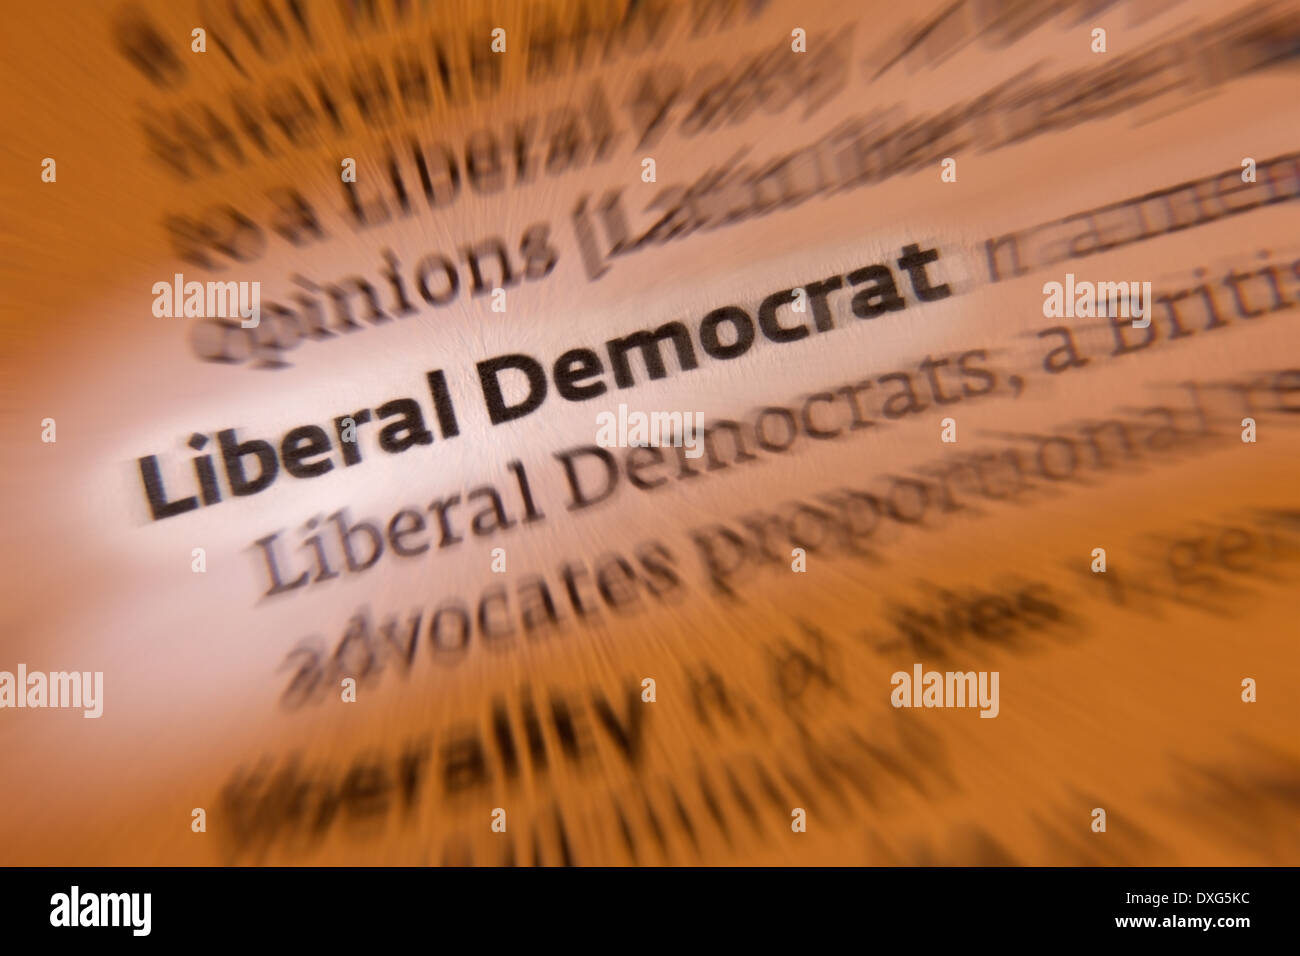 The Liberal Democrats are a major British political party - Stock Image